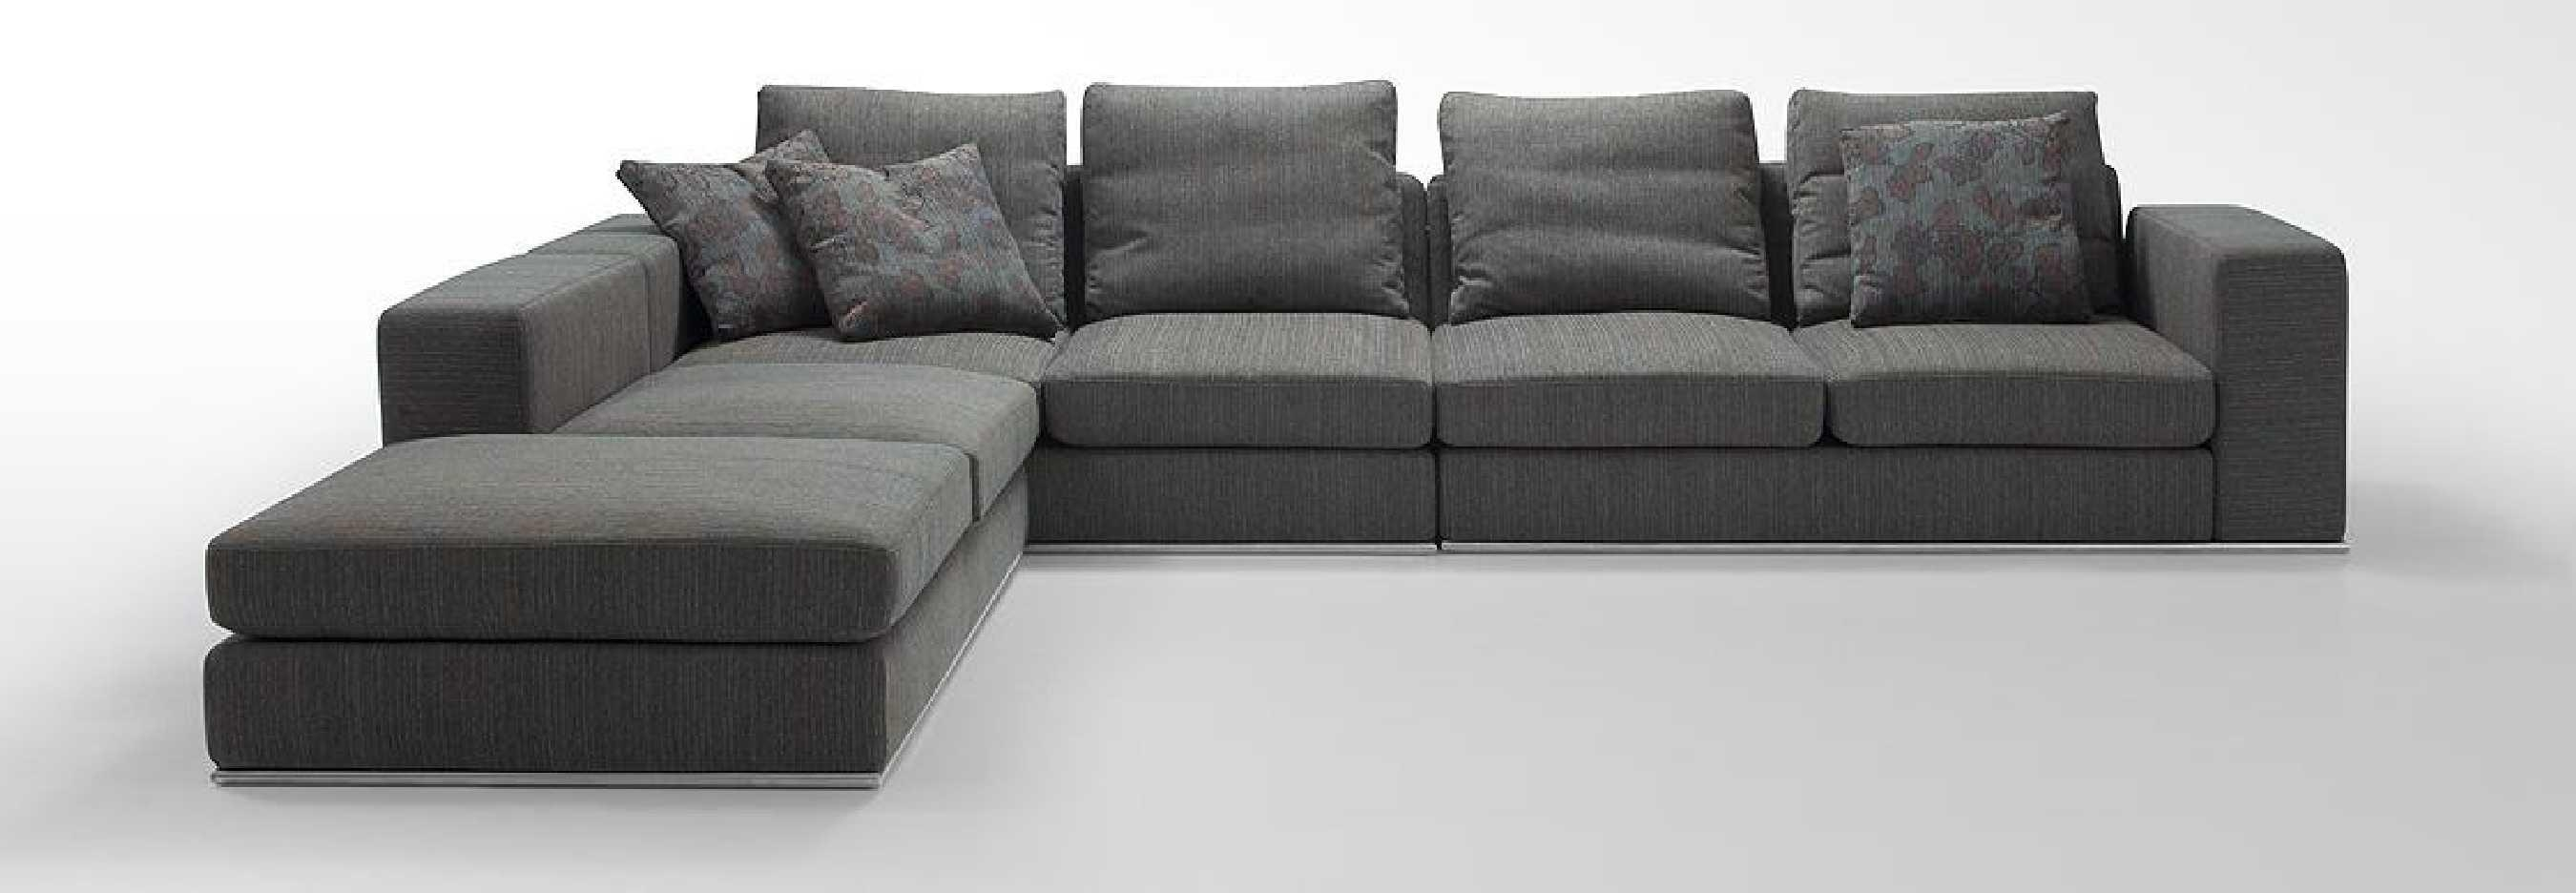 Furniture: Amusing Furniture Decorated L Shaped Sleeper Sofa For Regarding Leather L Shaped Sectional Sofas (View 6 of 20)